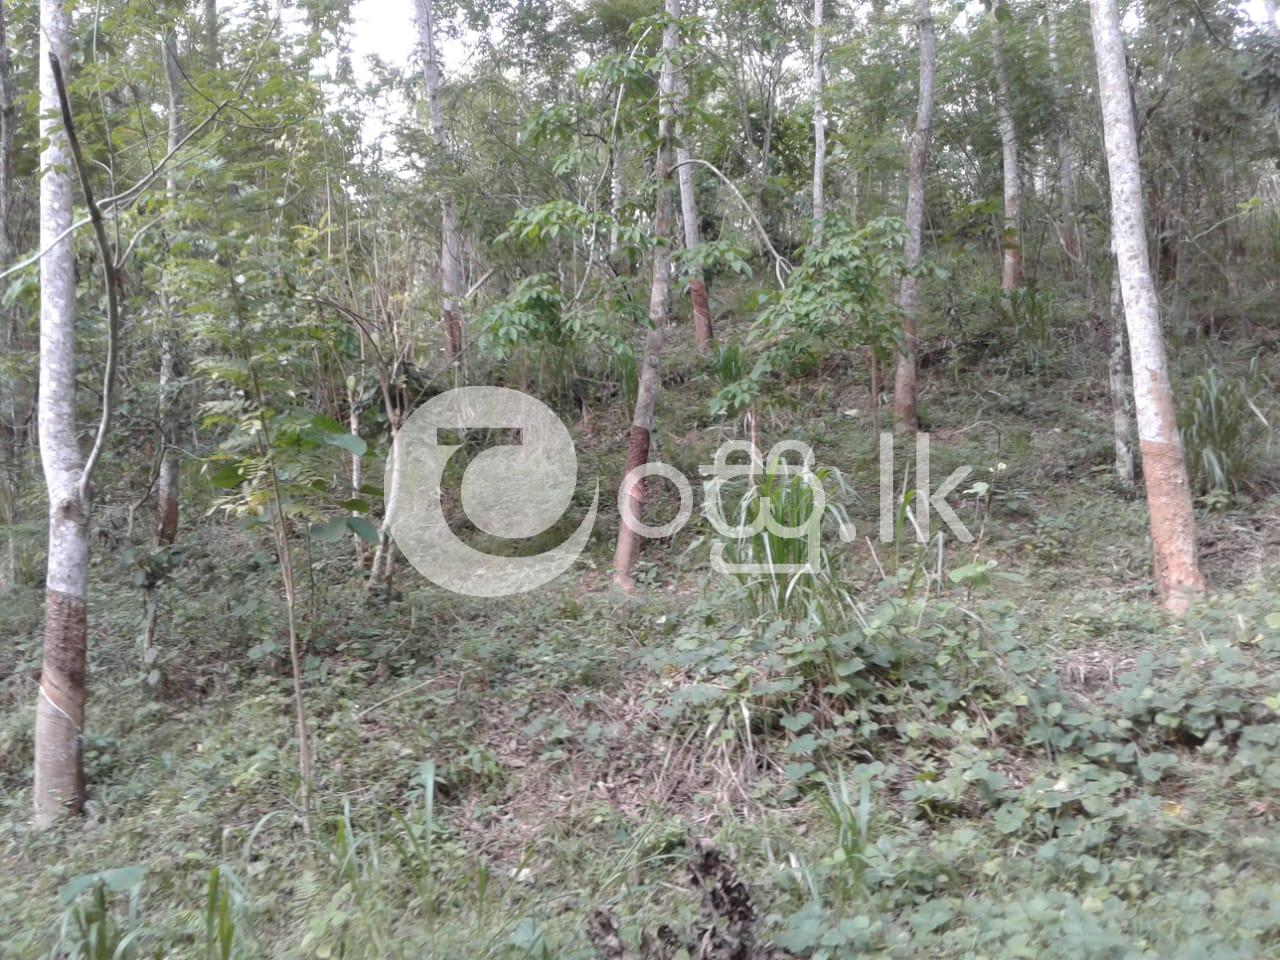 Rubber and Pepper Agriculture Land for Sale in Wellawaya Land in Wellawaya